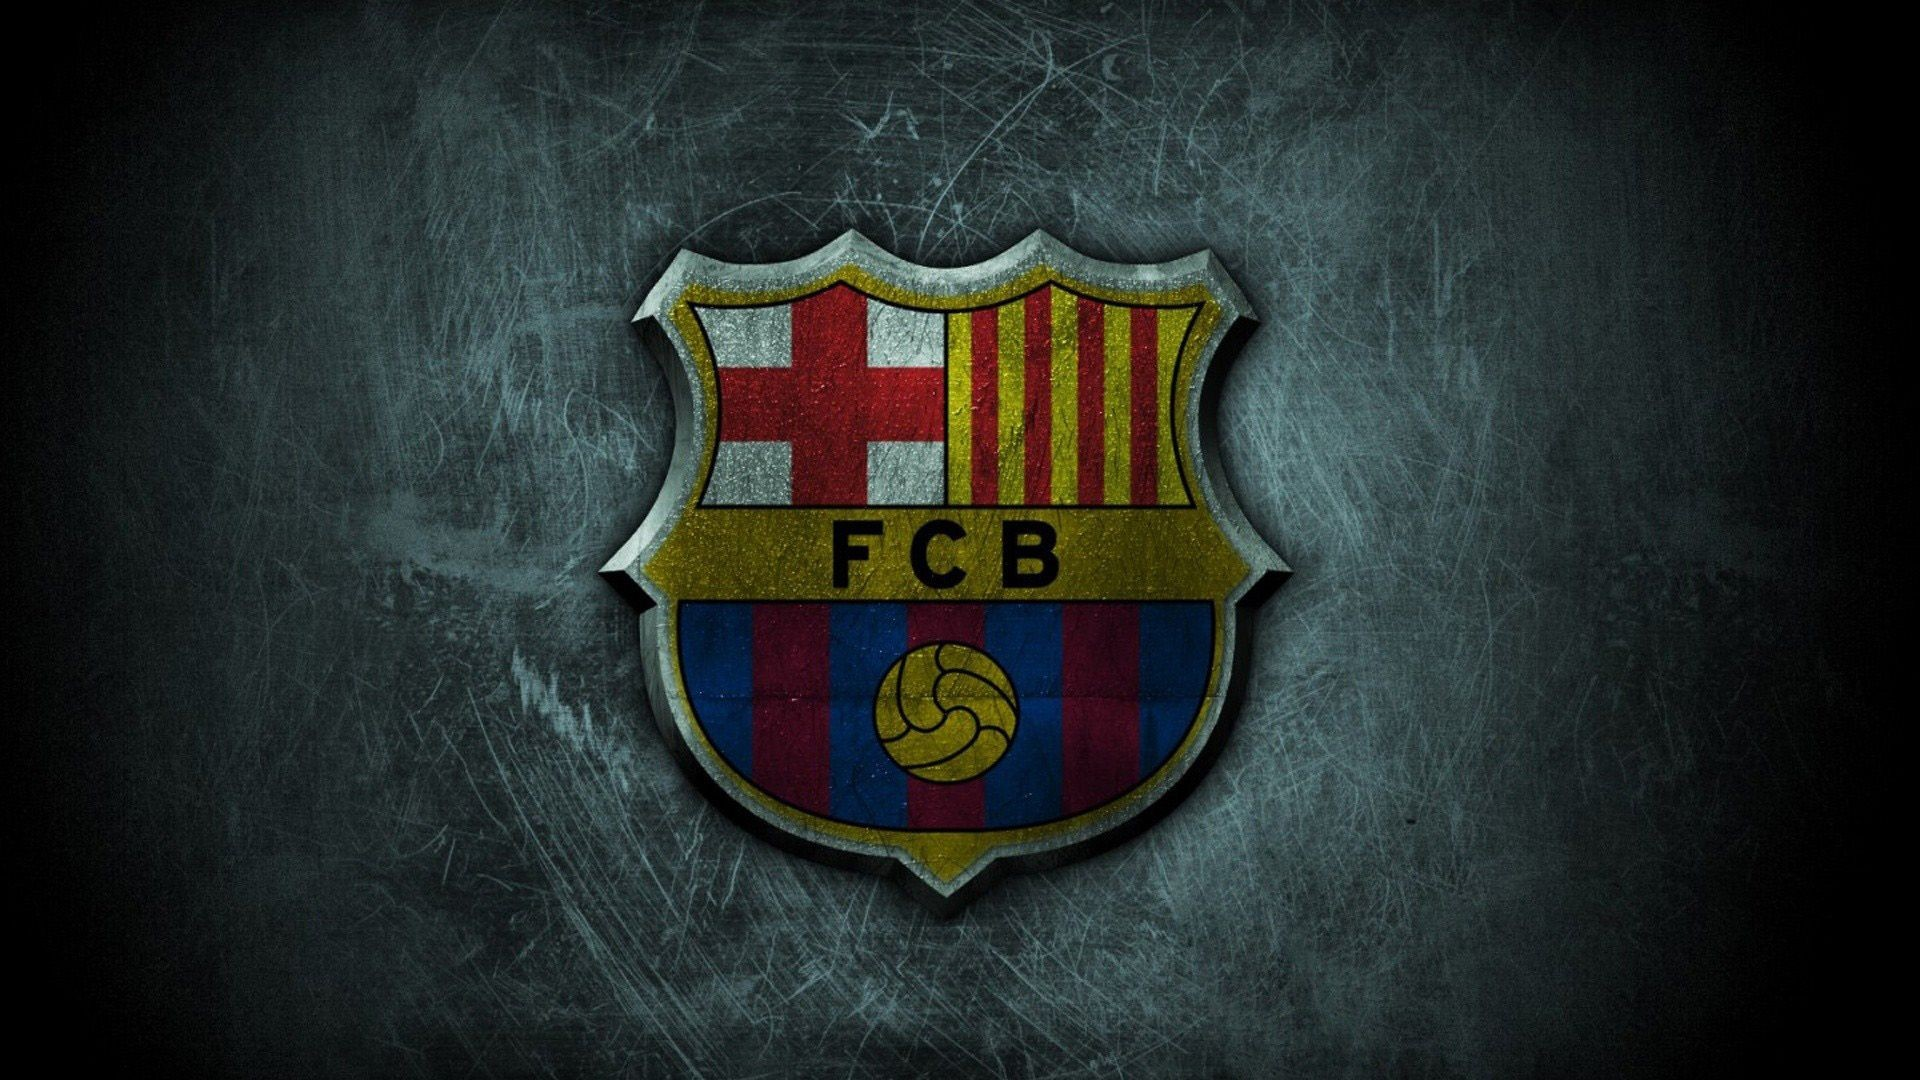 1920x1080 Images For Fc Barcelona Wallpaper 2015 Logo Download FC Barca